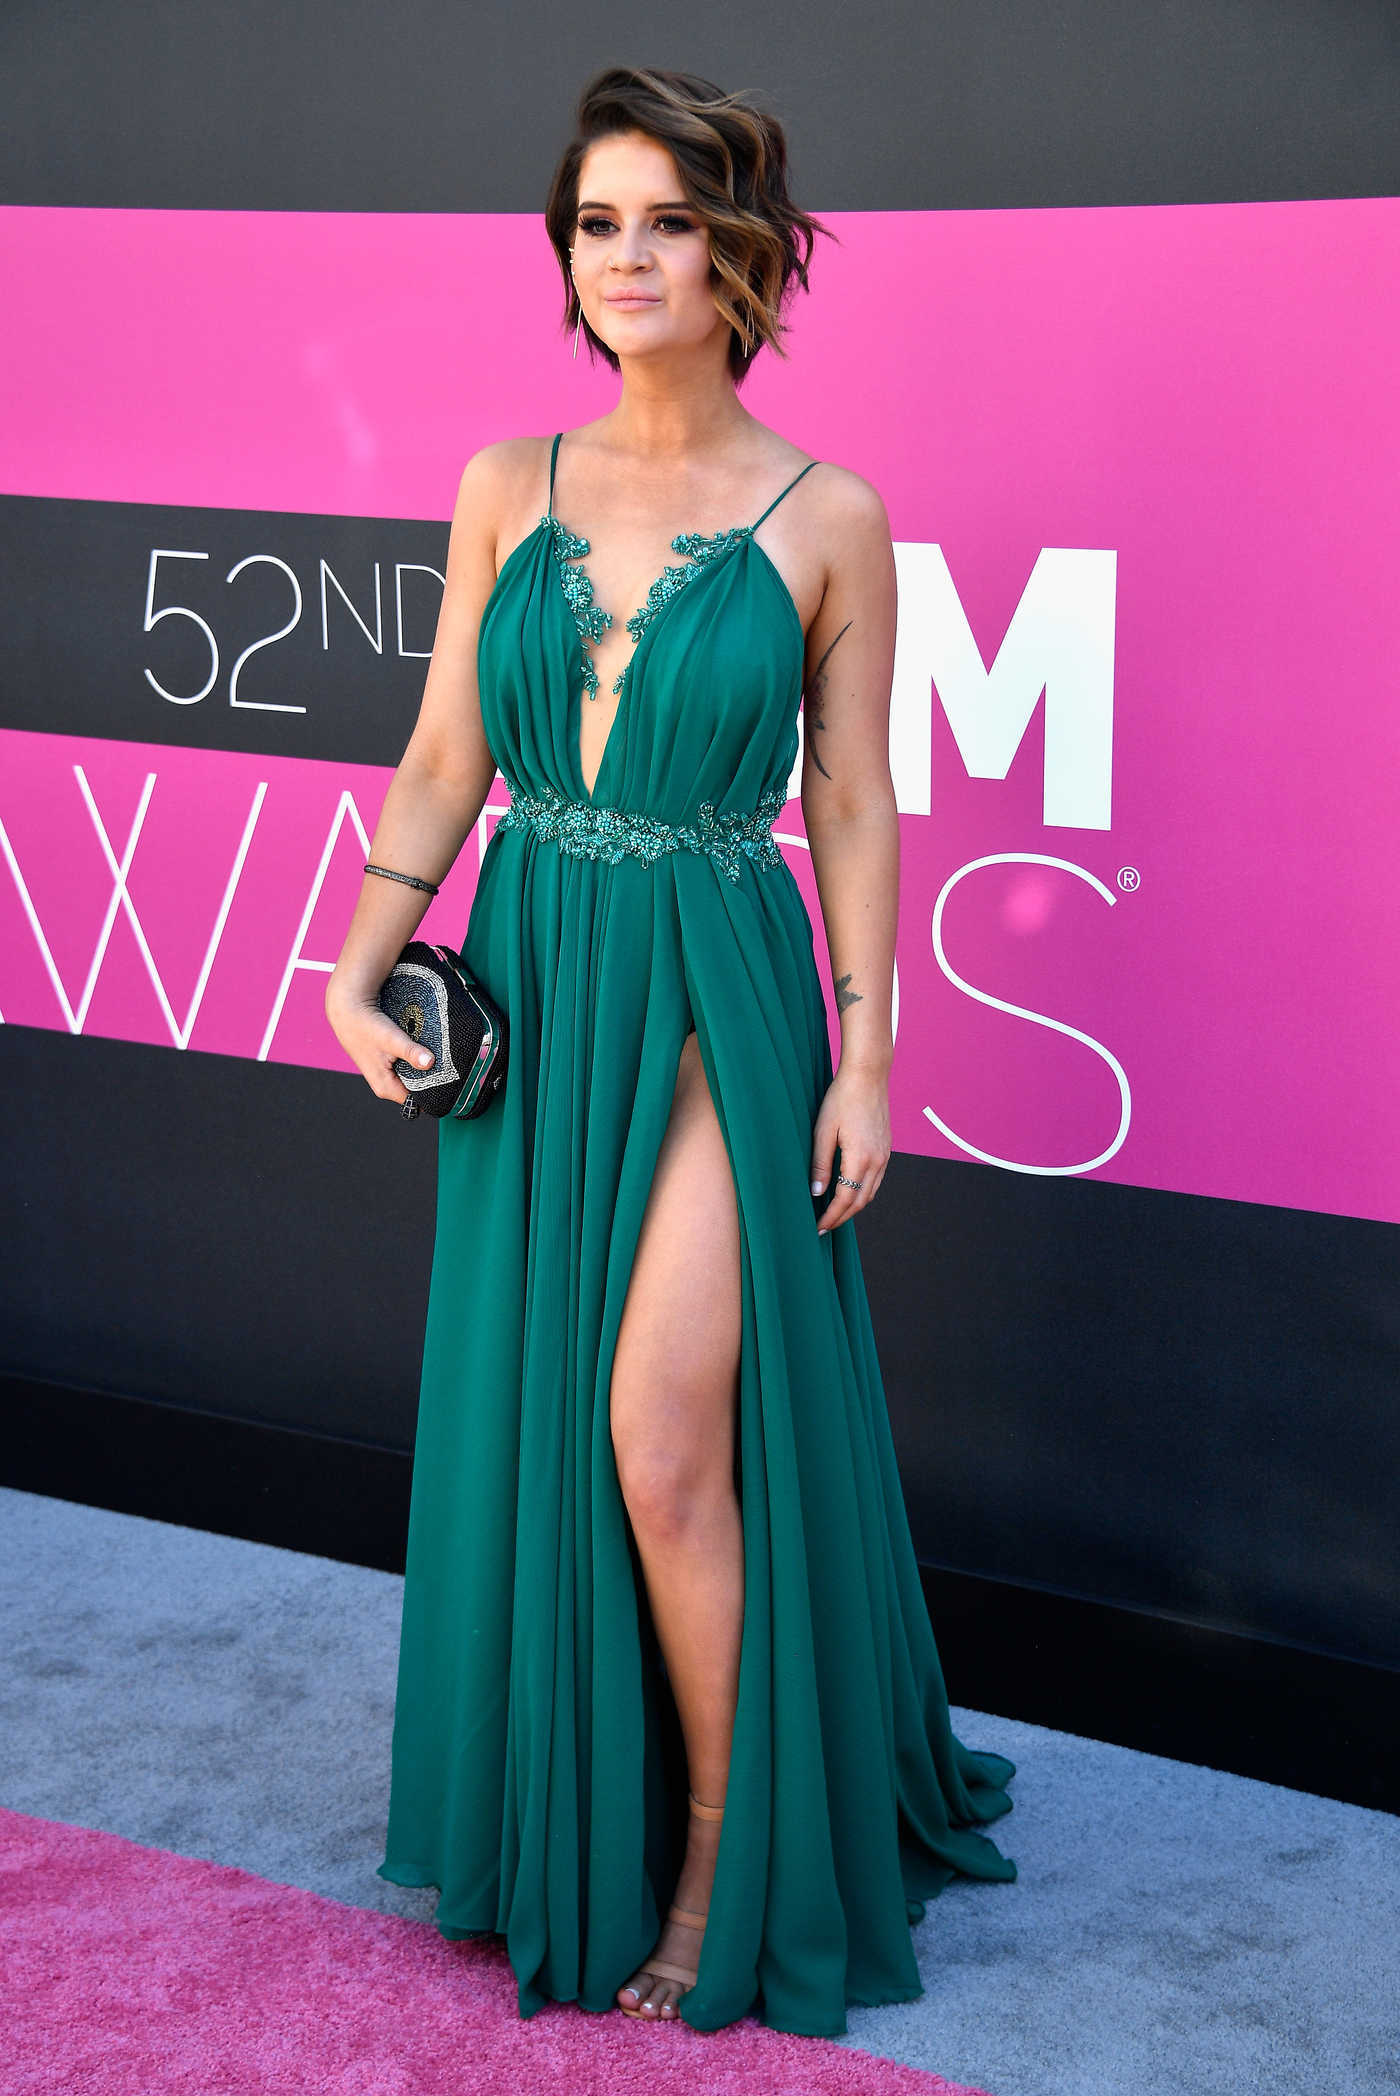 Maren Morris at the 52nd Annual Academy of Country Music Awards at T-Mobile Arena in Las Vegas 04/02/2017